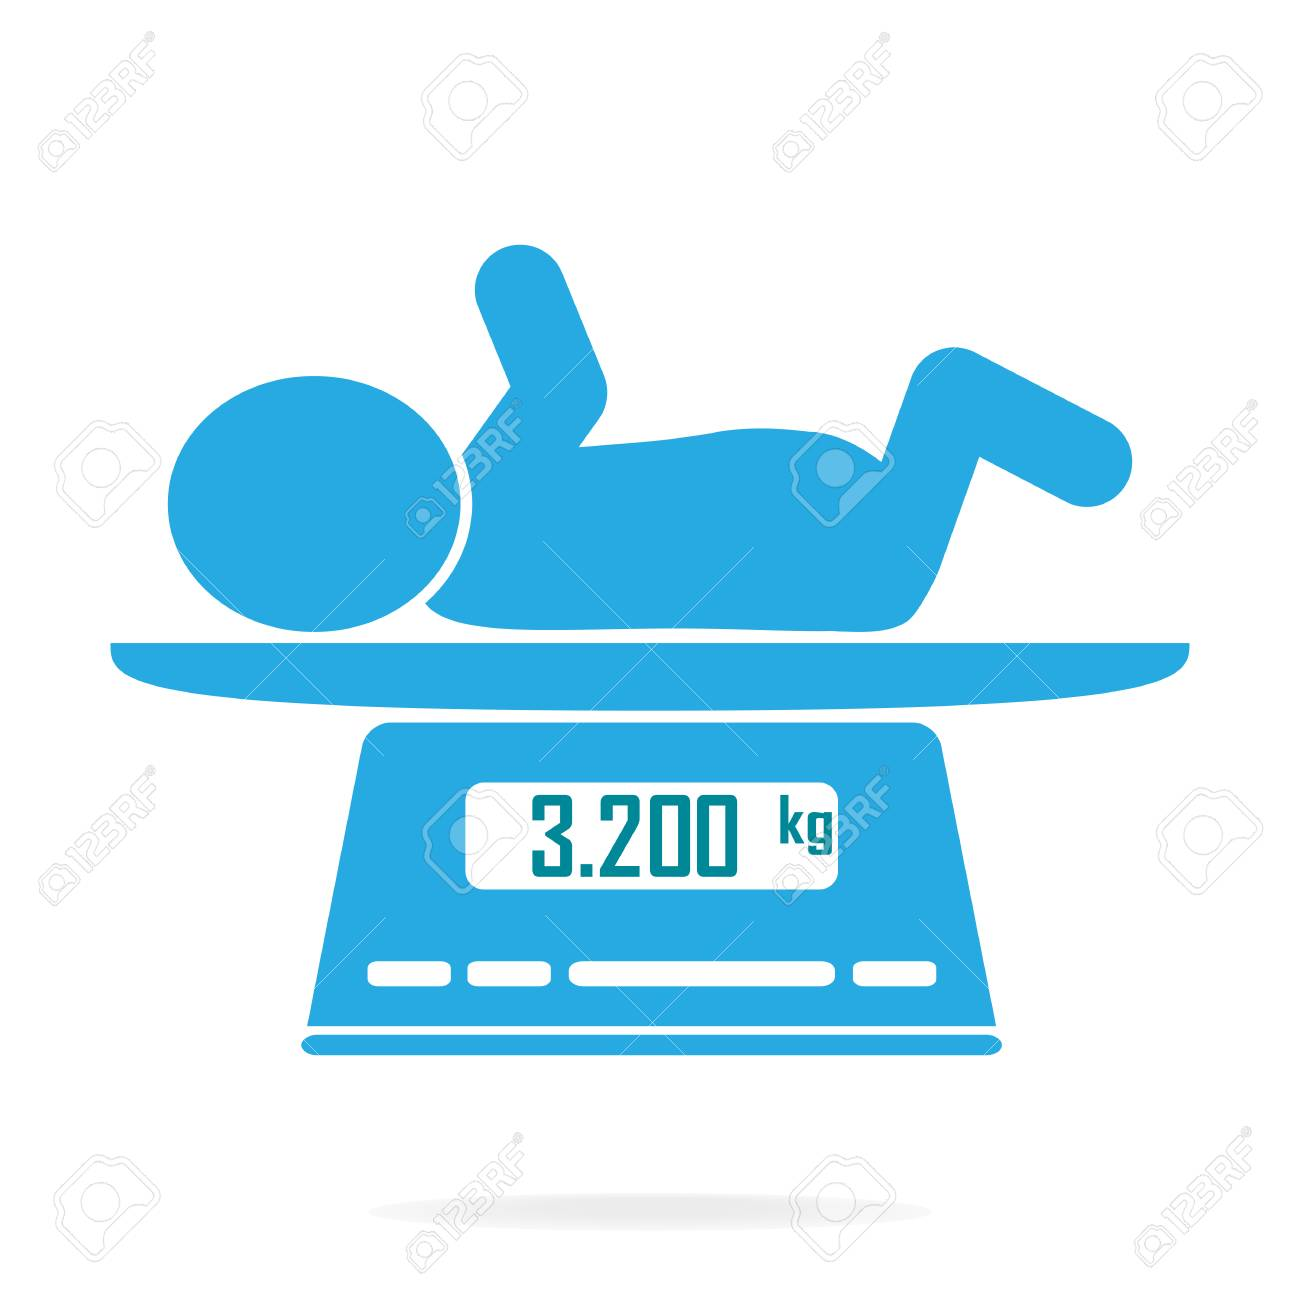 Weight scale for infant icon, Digital scales measure weight in